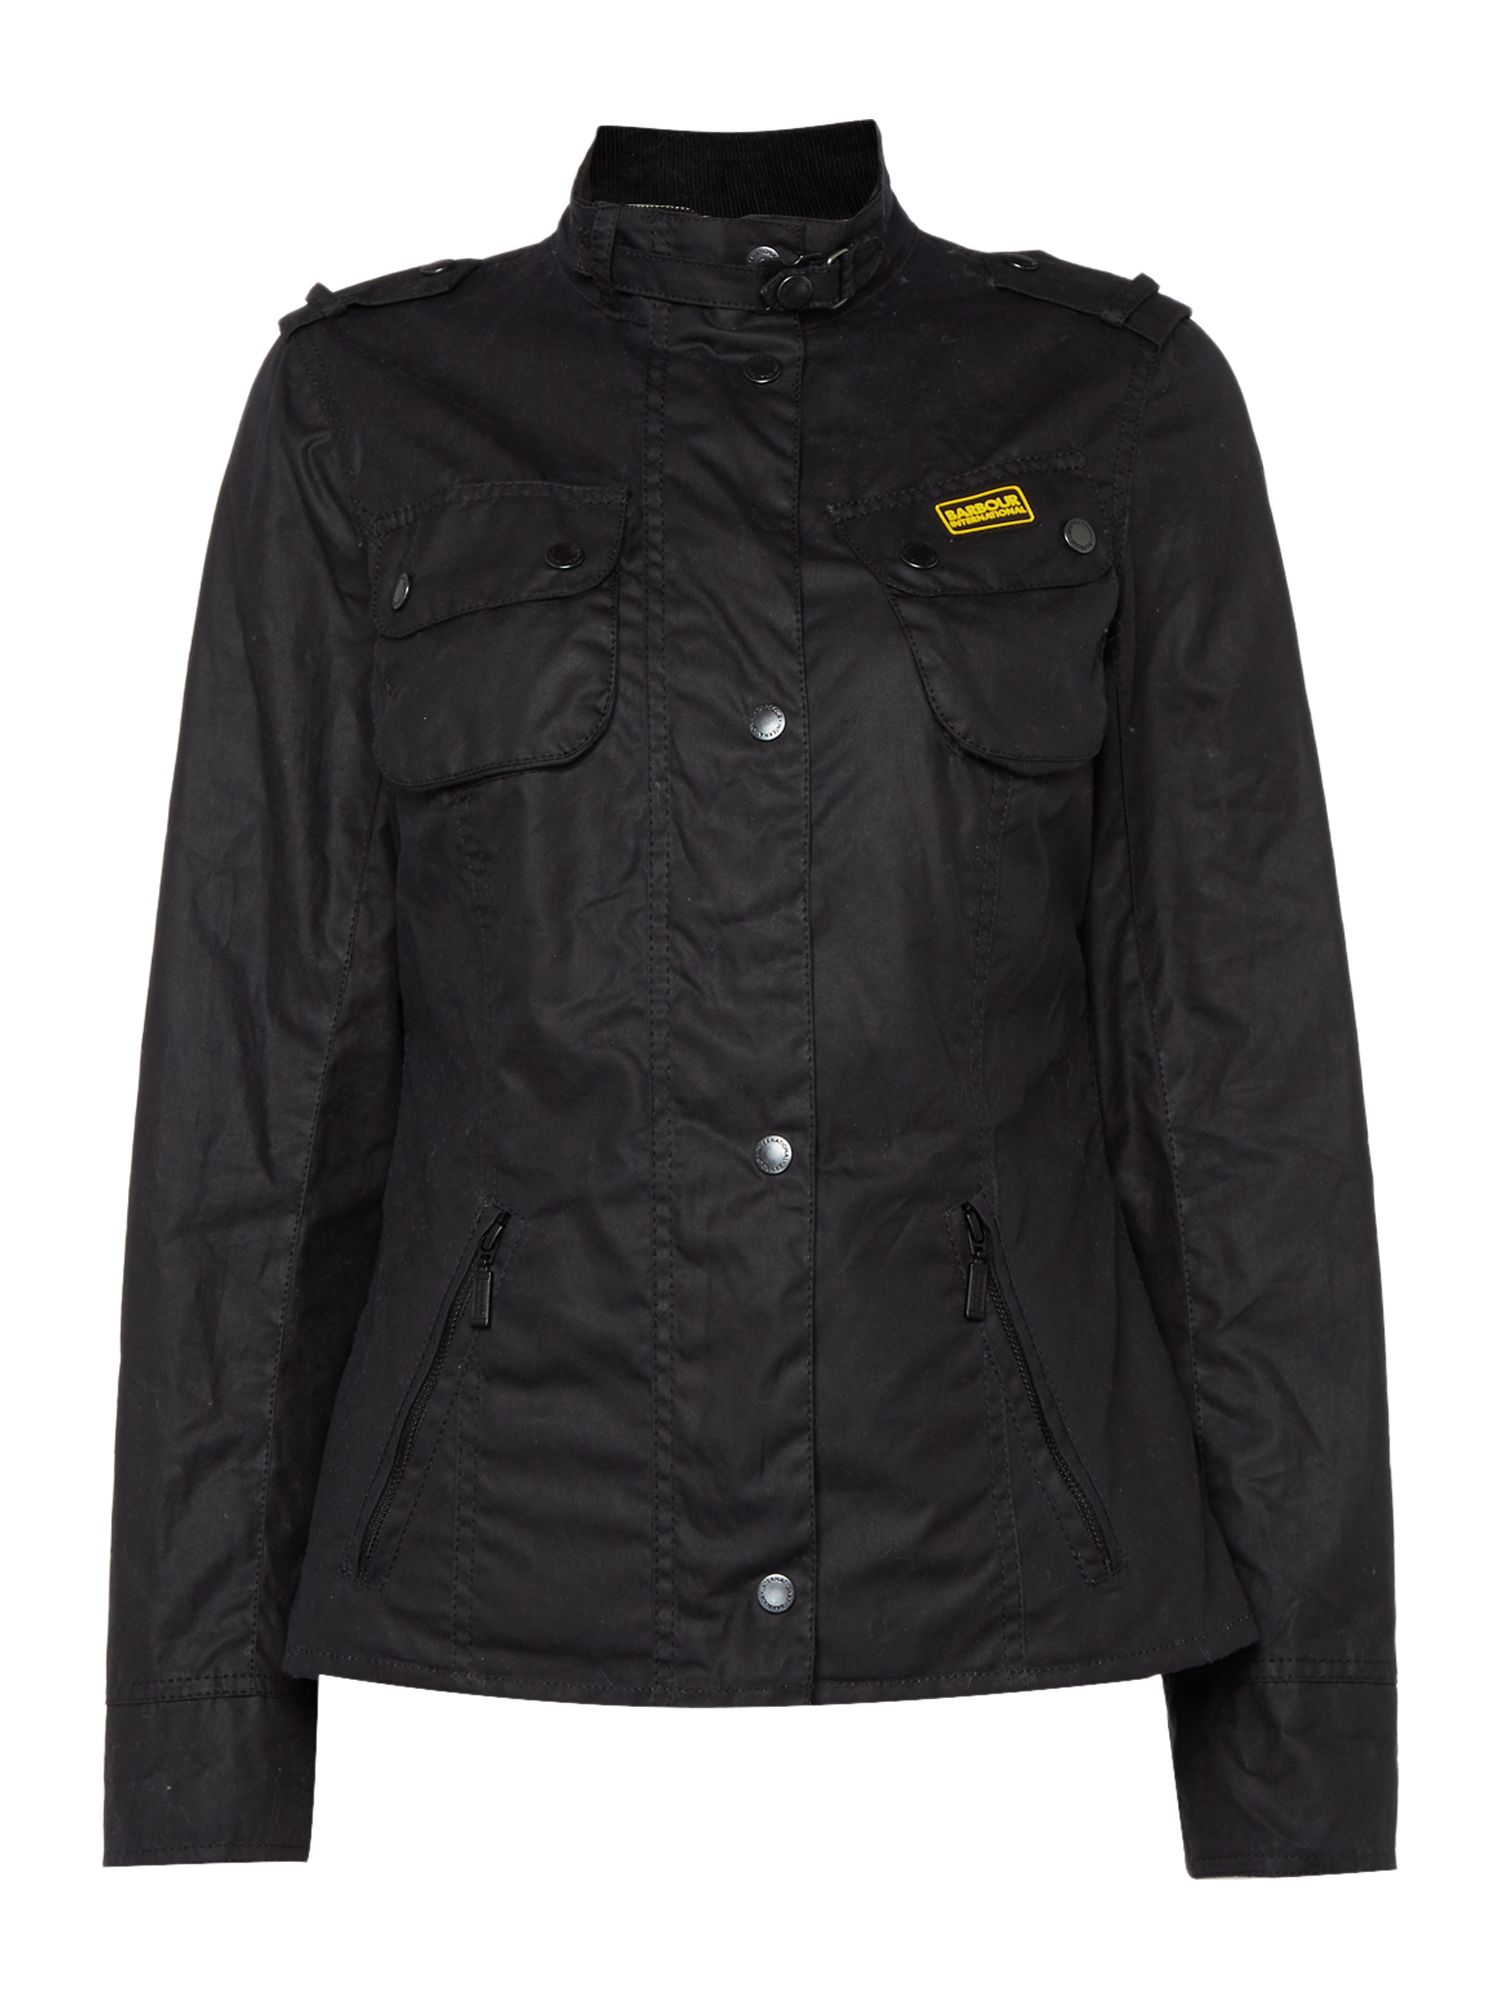 Barbour Barbour International wax jacket Navy